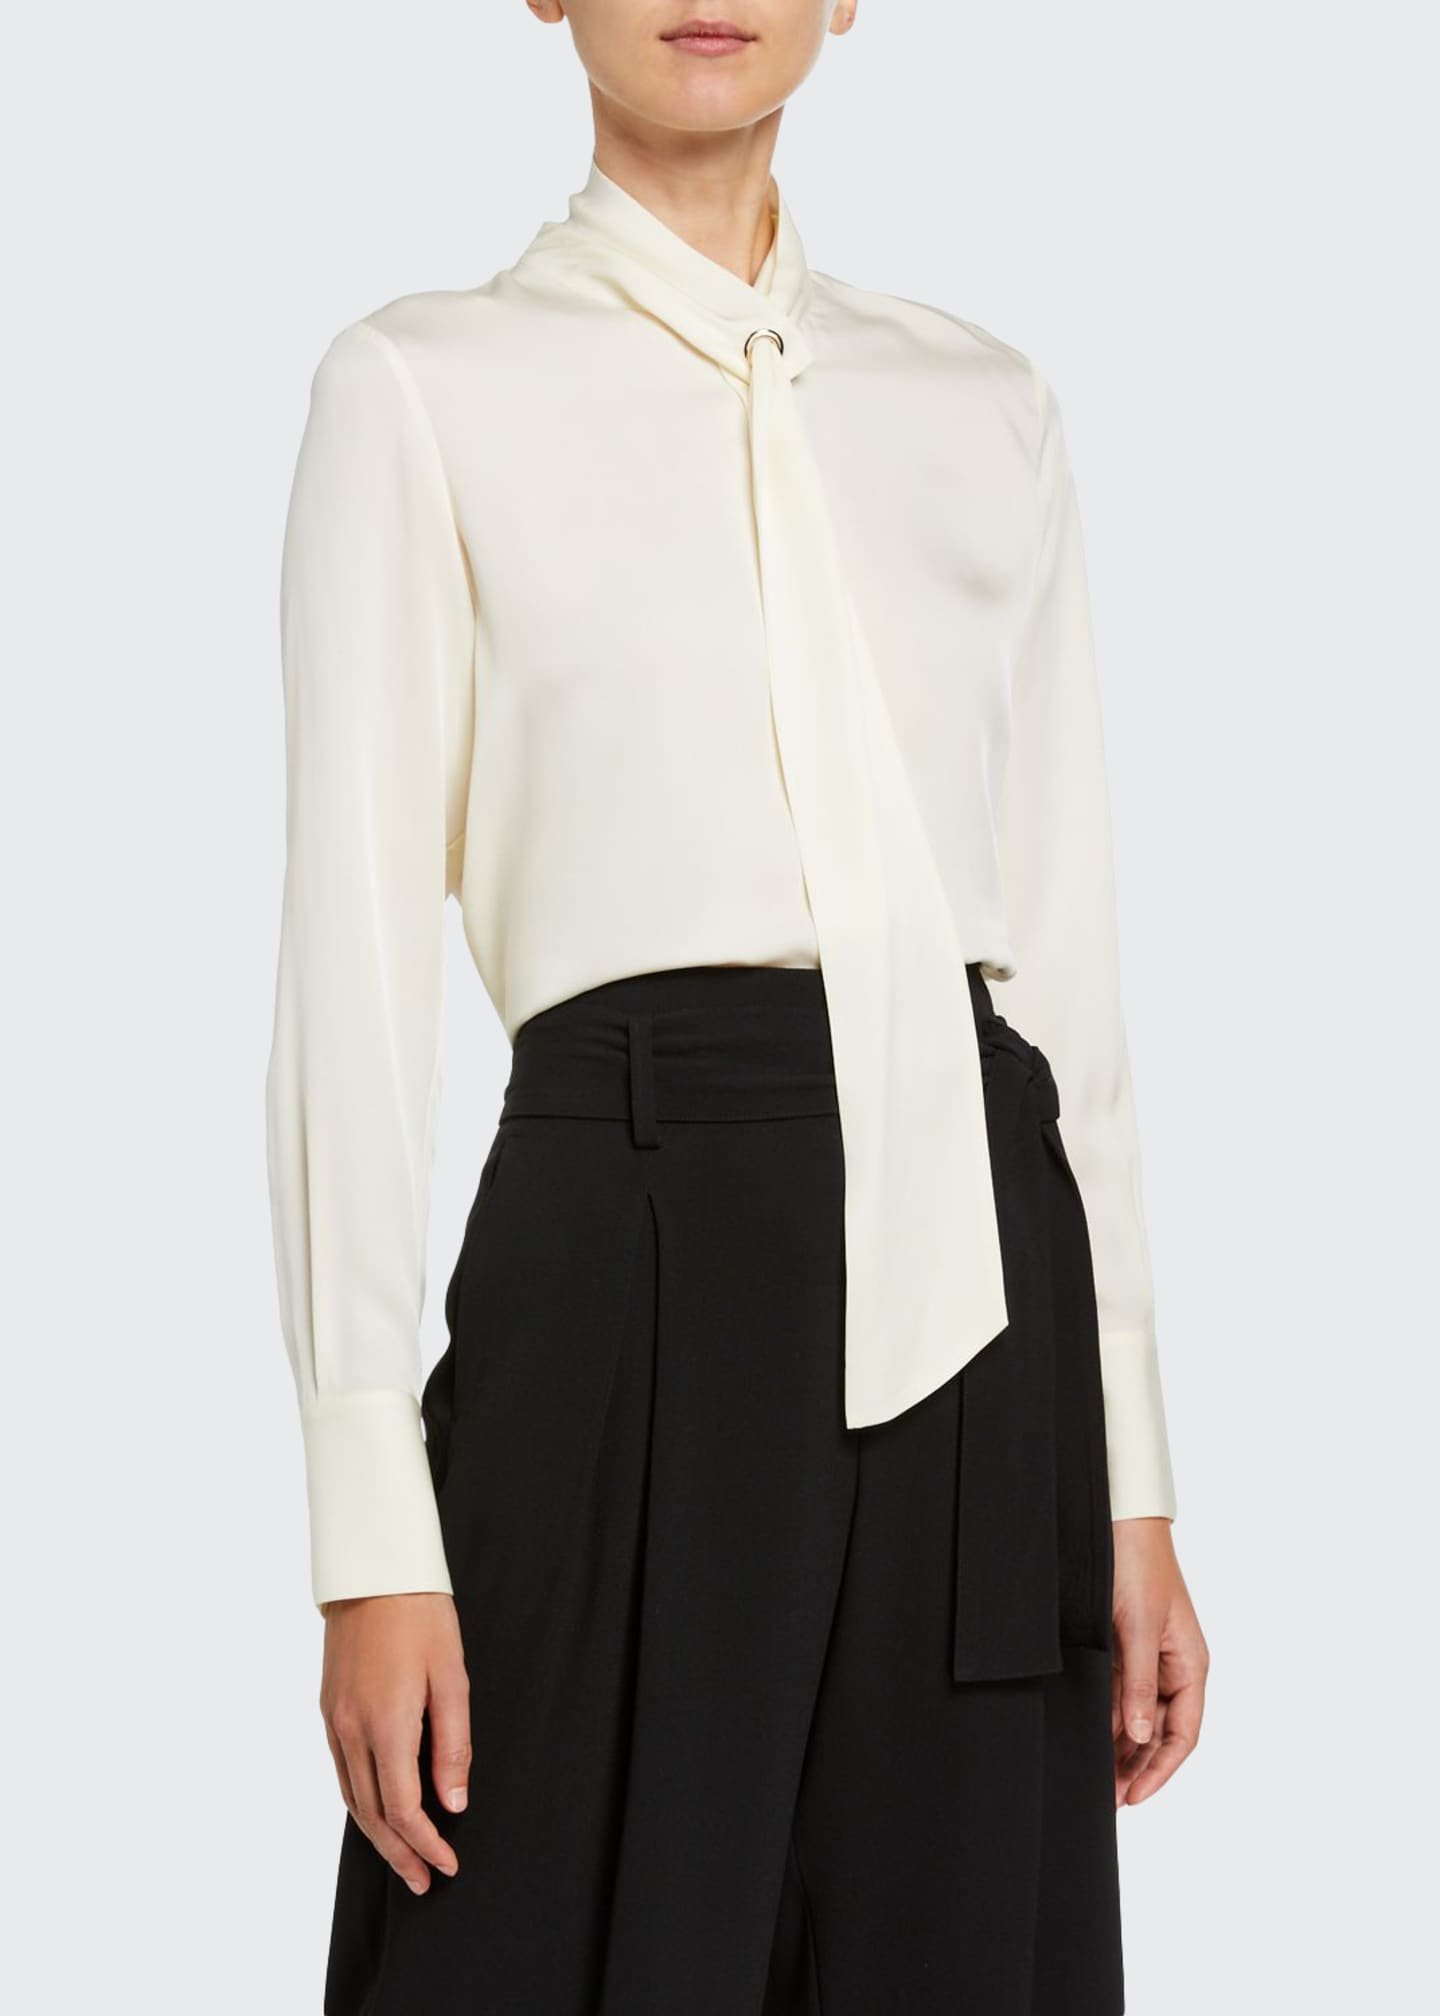 Jason Wu Tie-Neck Long-Sleeve Silk Blouse